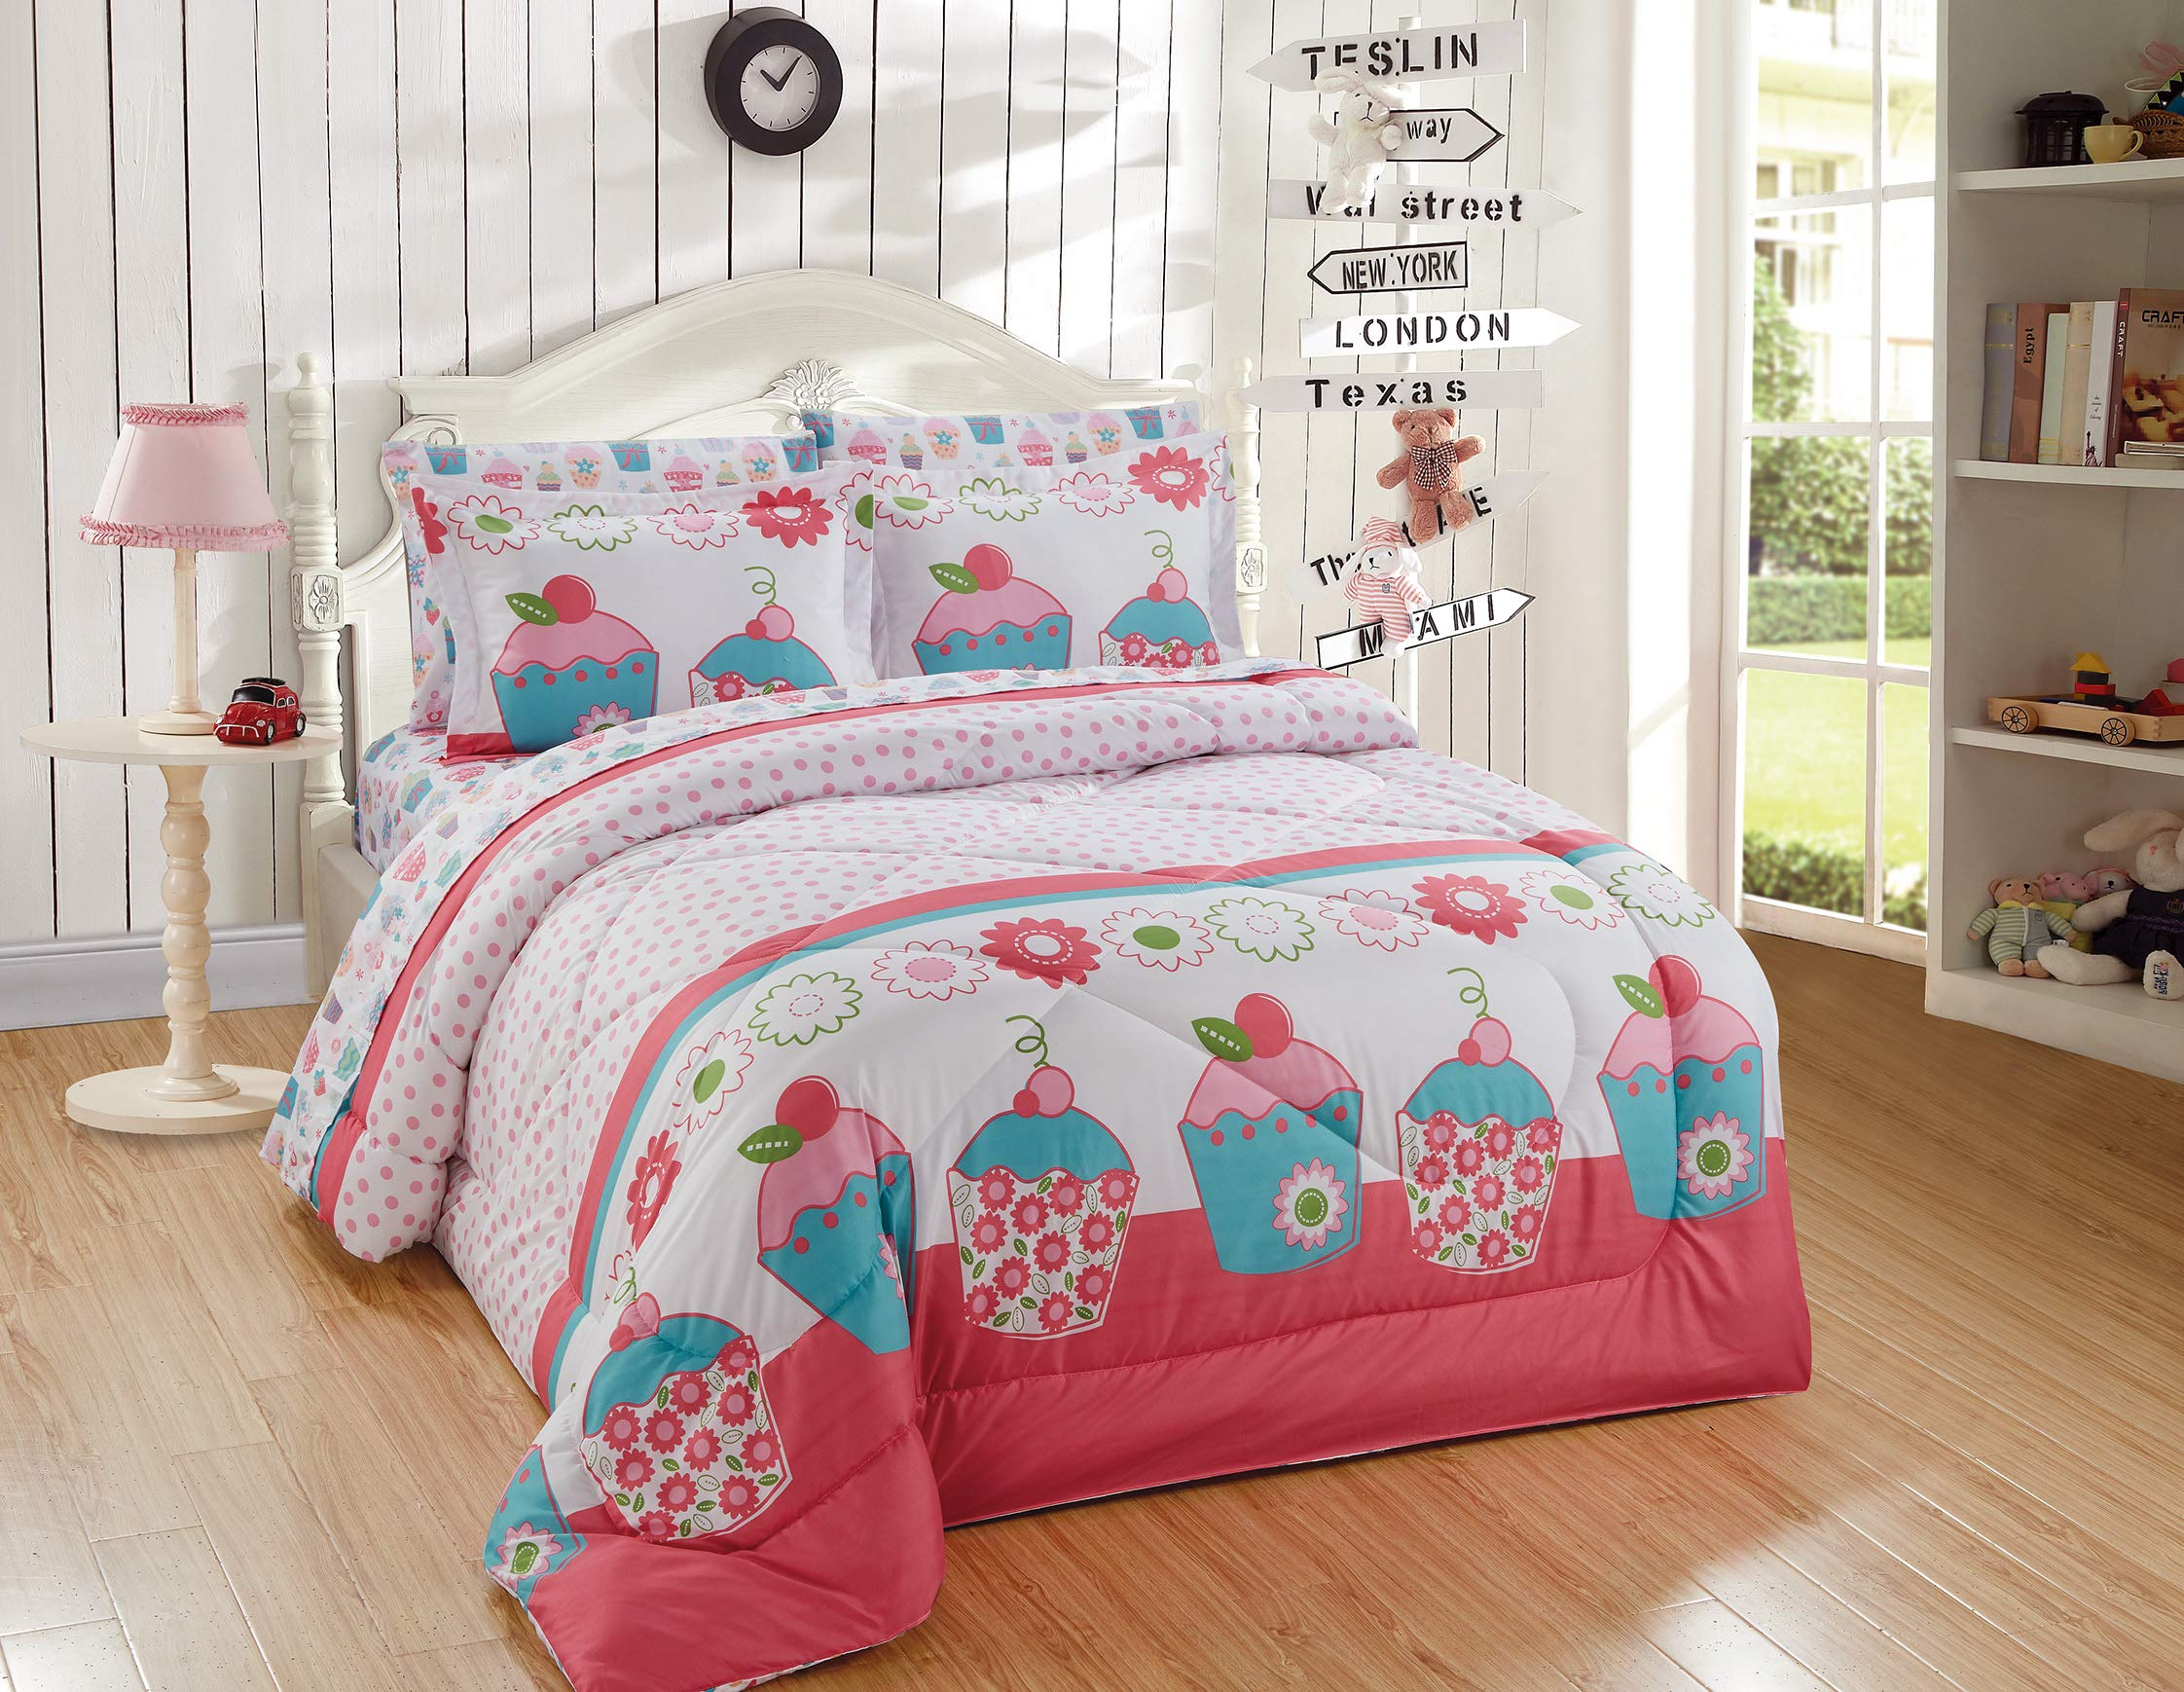 Better Home Style Multicolor Pink Turquoise Green Floral Cupcakes Printed Fun Design 5 Piece Comforter Bedding Set for Girls/Kids Bed in a Bag with Sheet Set # Turquoise Cupcake (Twin) by Better Home Style